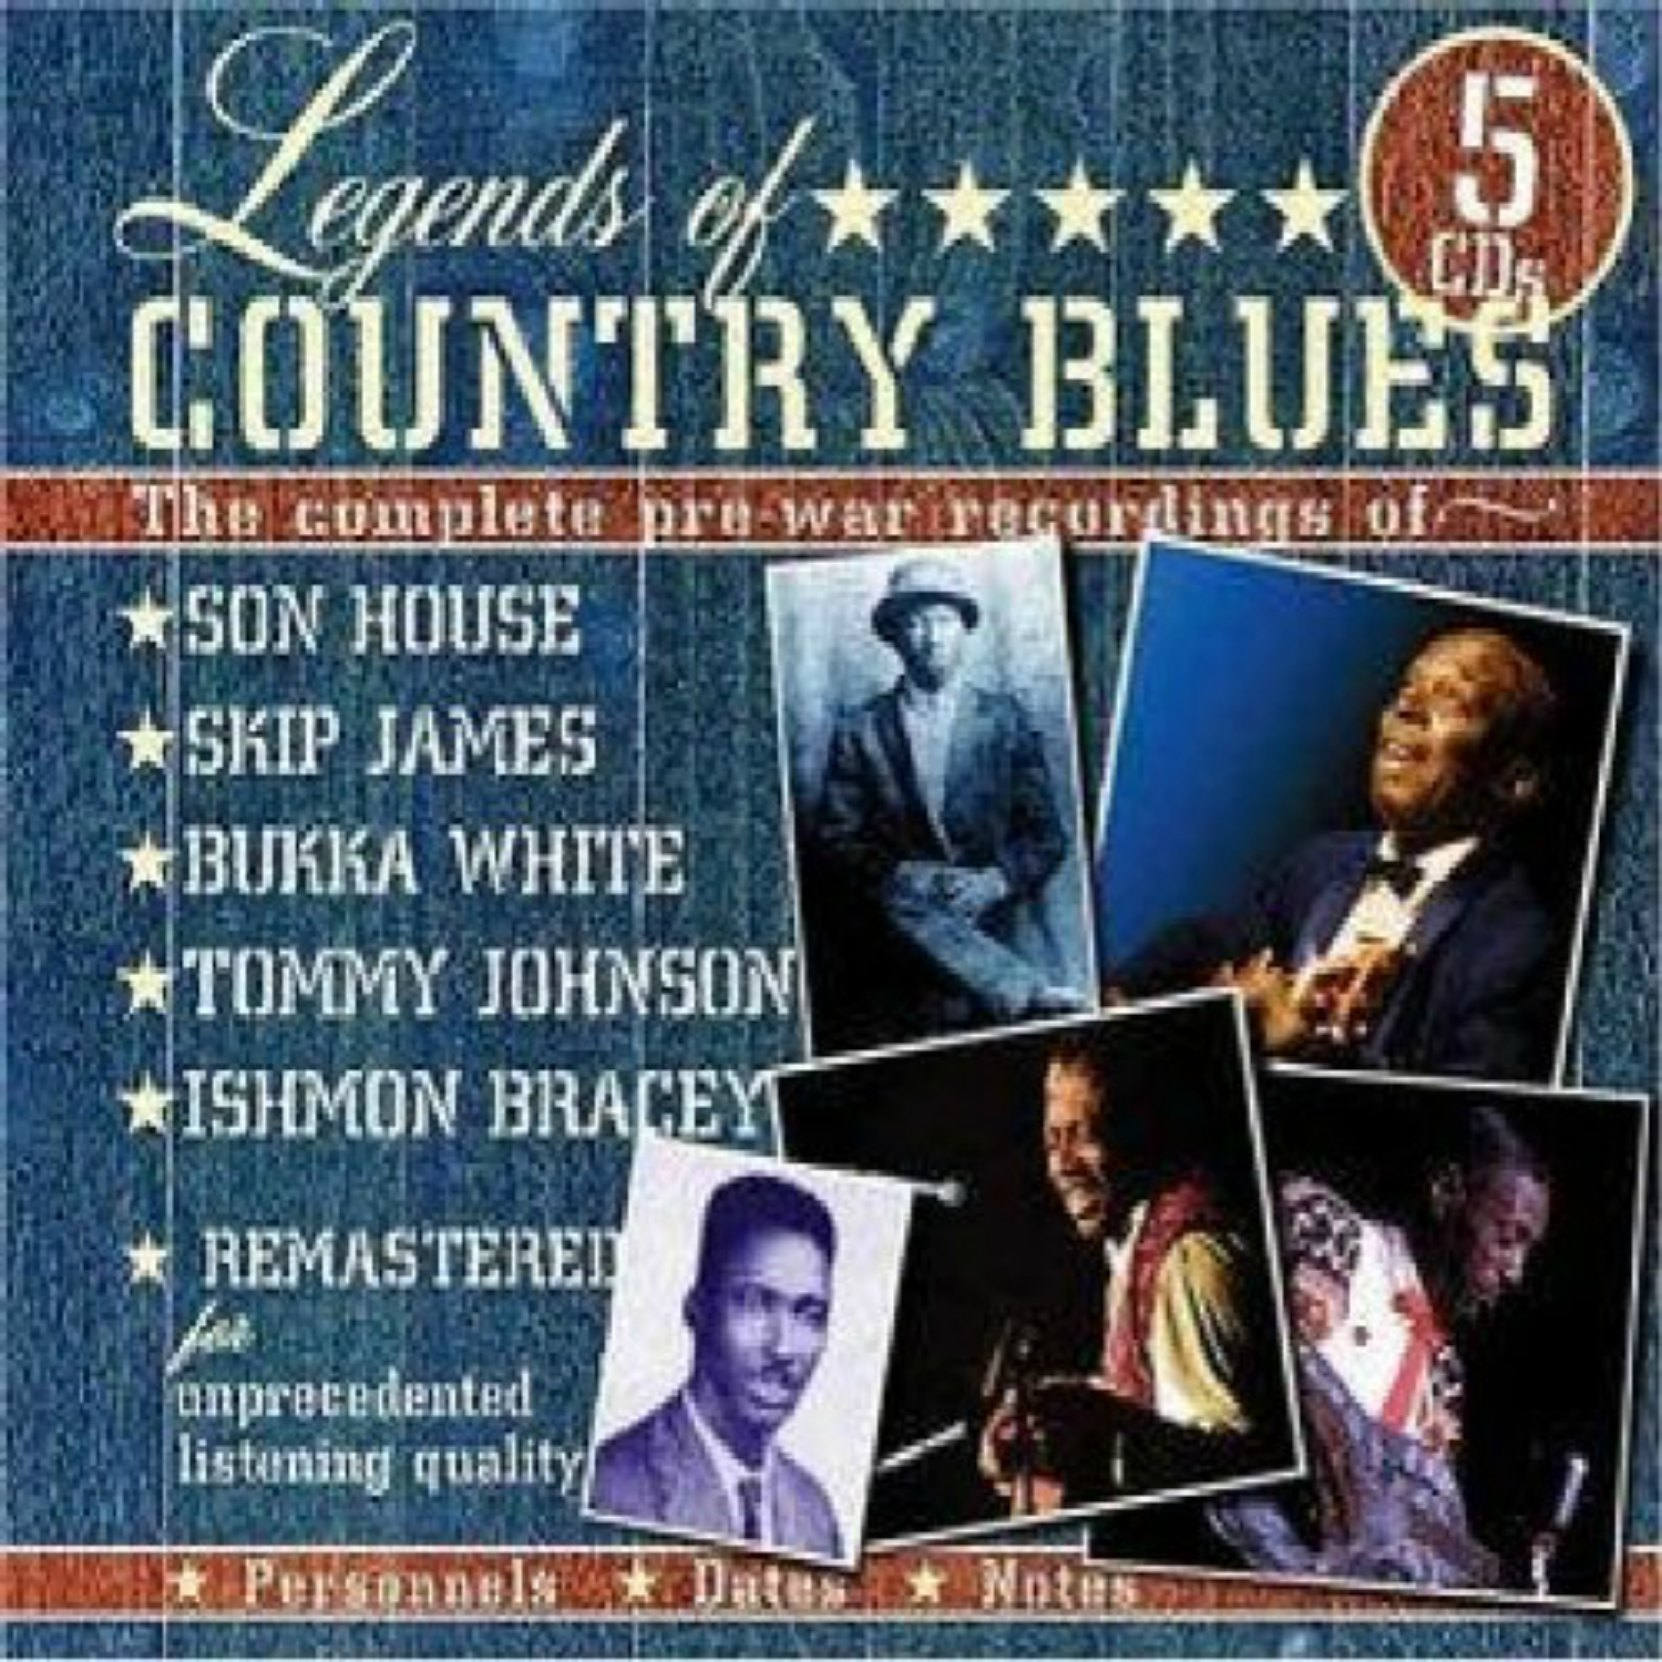 CD cover, Legends of Country Blues, on JSP Records, features the complete early recordings of Son House, Skip James, Bukka White,